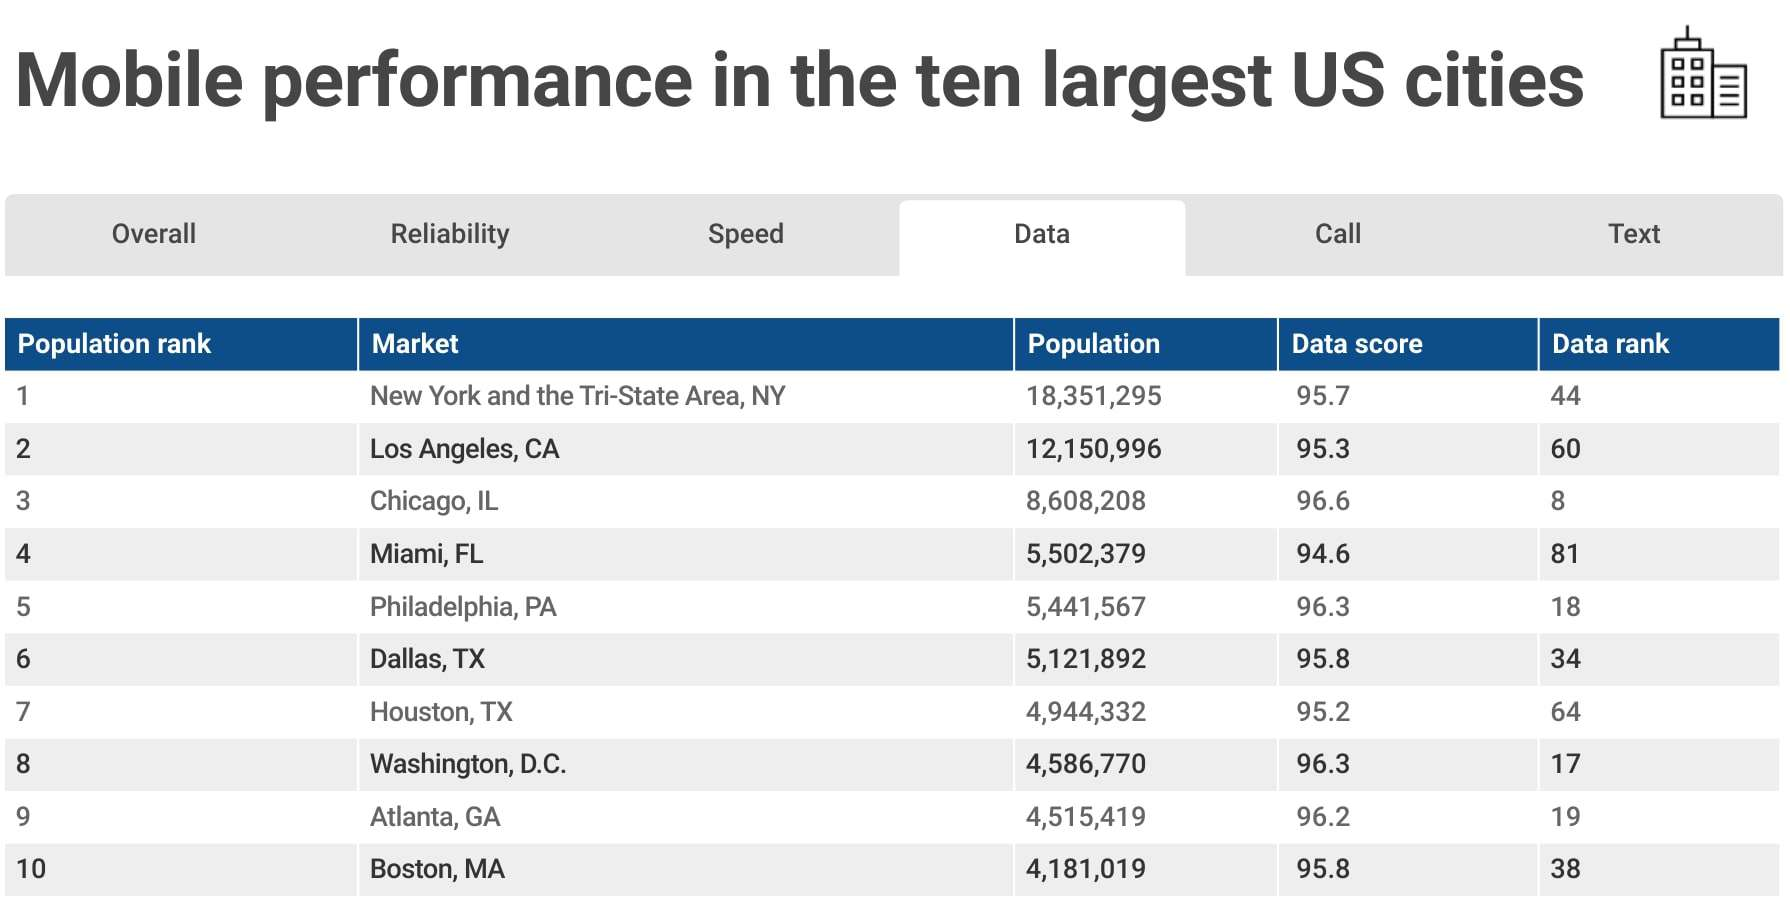 RootMetrics Mobile Performance In Top Largest Cities 1H 2018 04